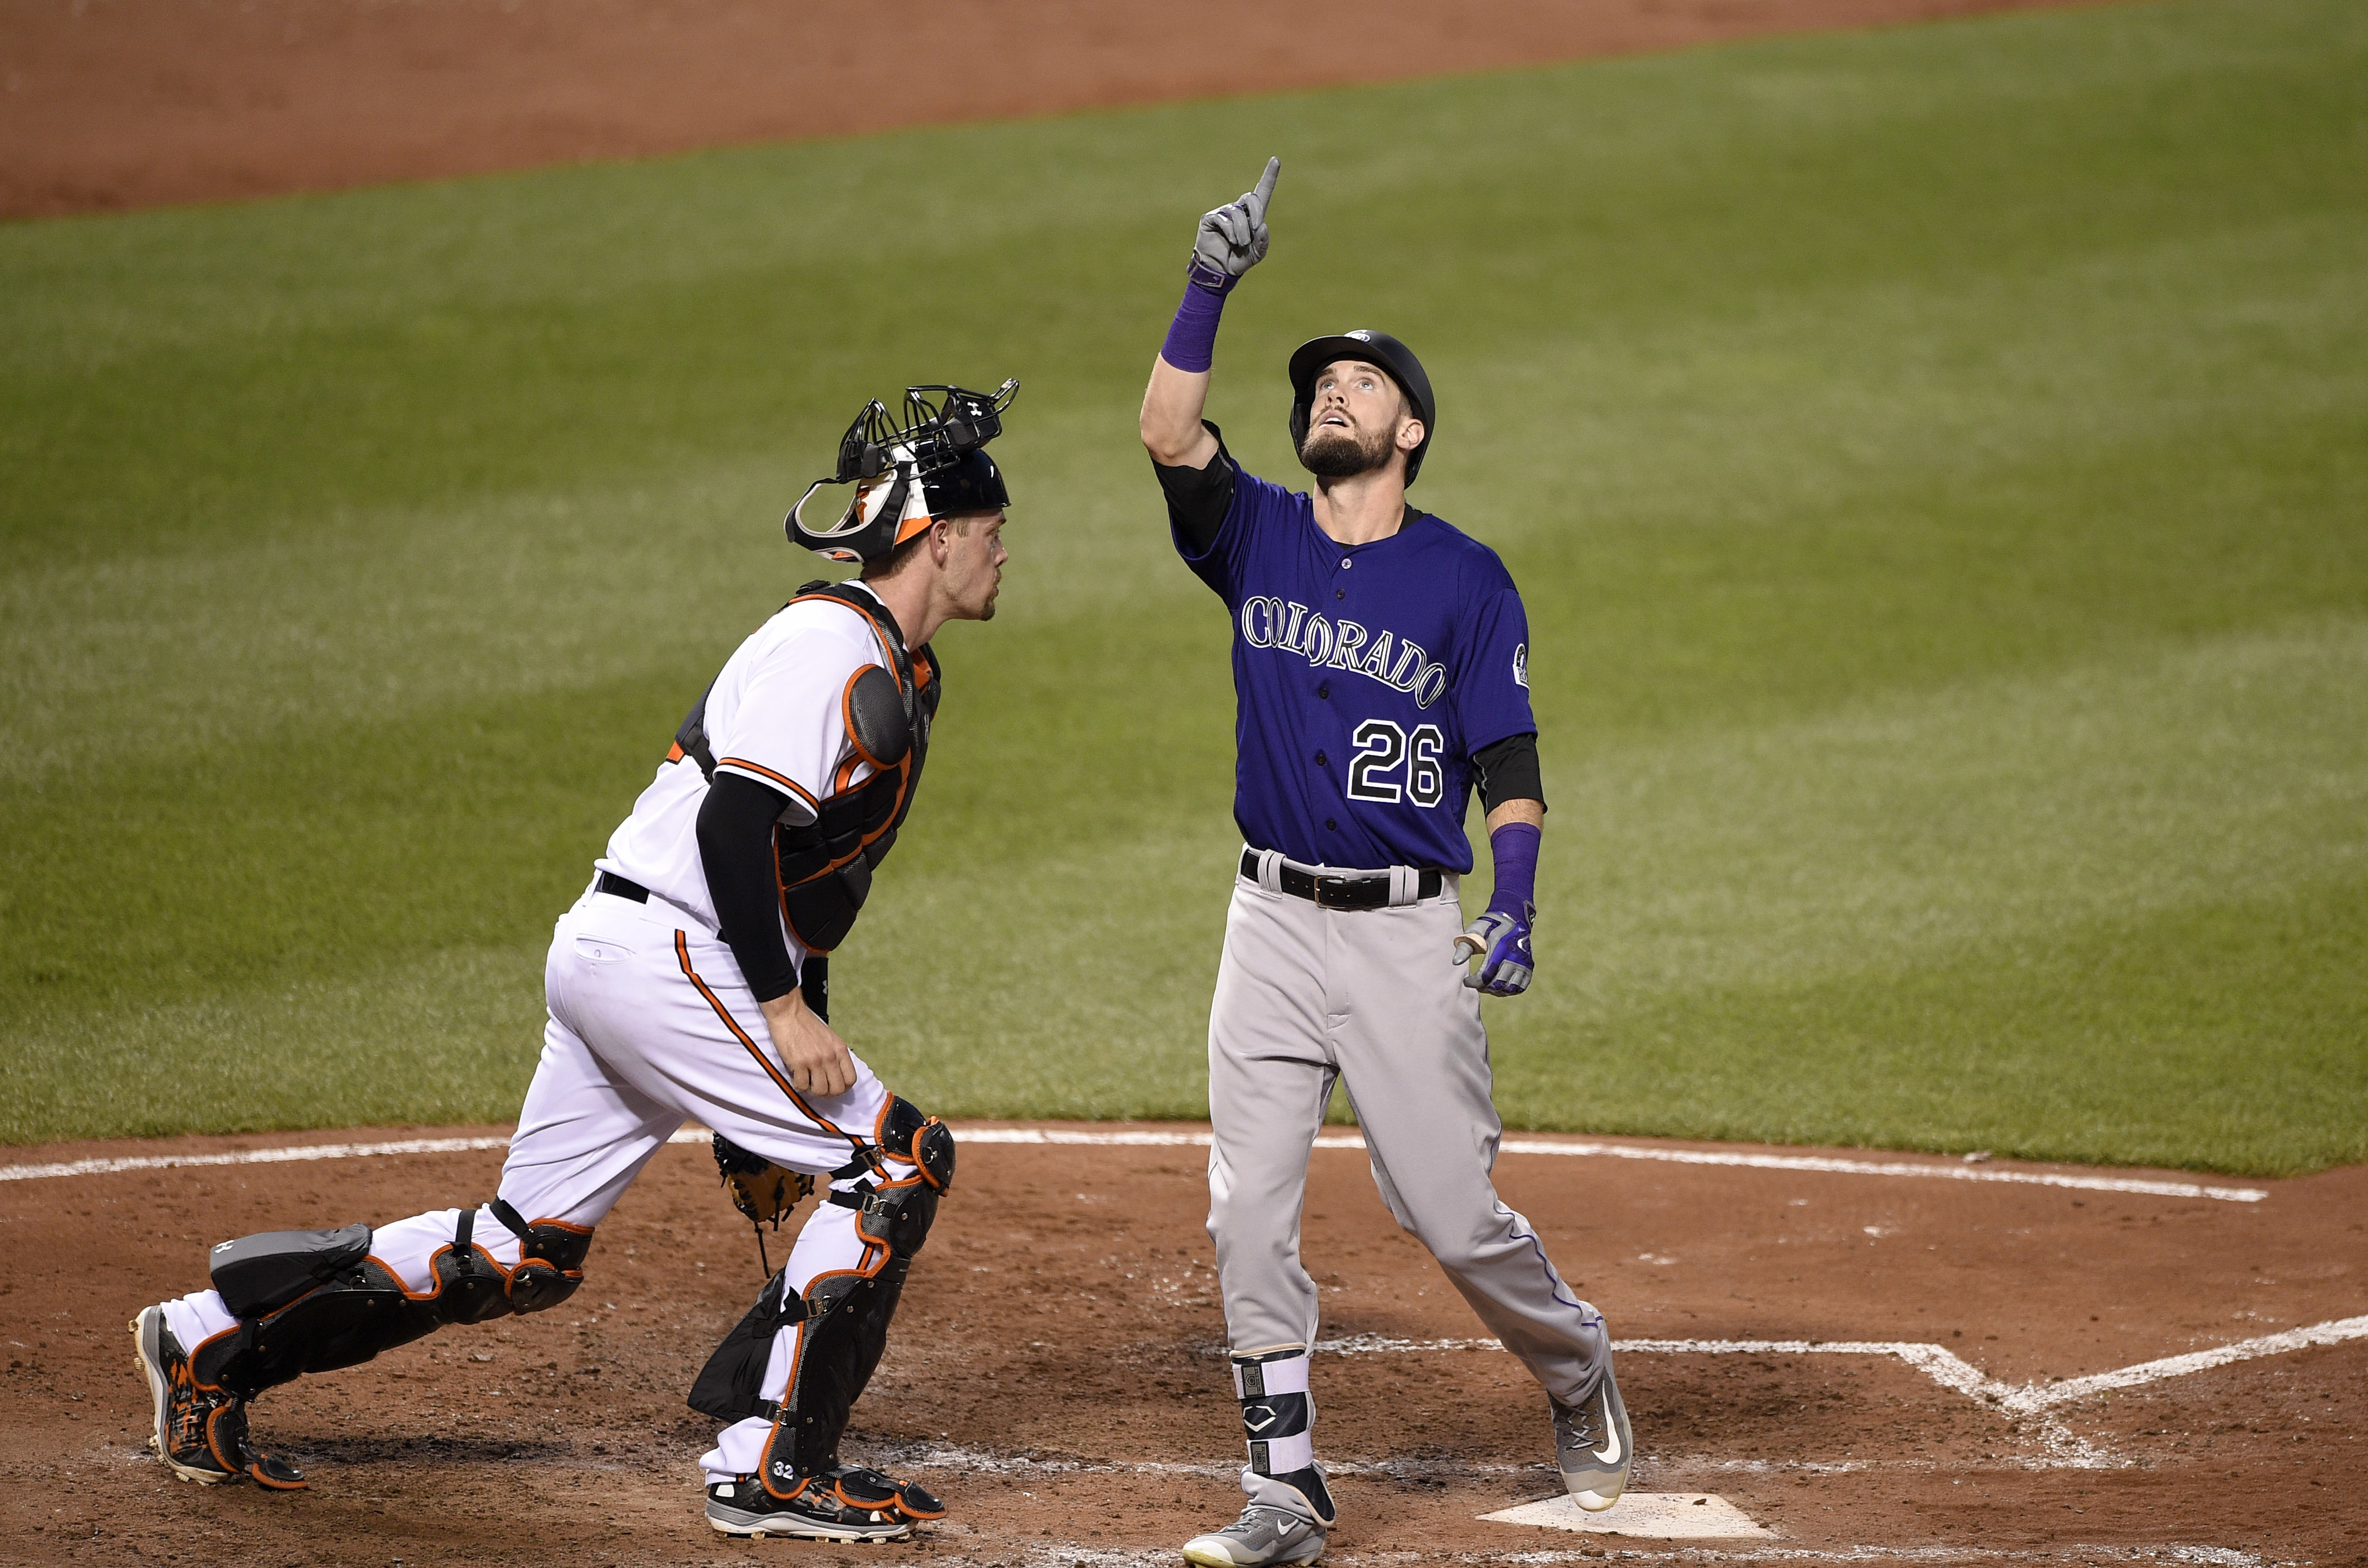 Colorado Rockies' David Dahl (26) celebrates his home run as Baltimore Orioles catcher Matt Wieters stands at left during the sixth inning of a baseball game, Wednesday, July 27, 2016, in Baltimore. (AP Photo/Nick Wass)